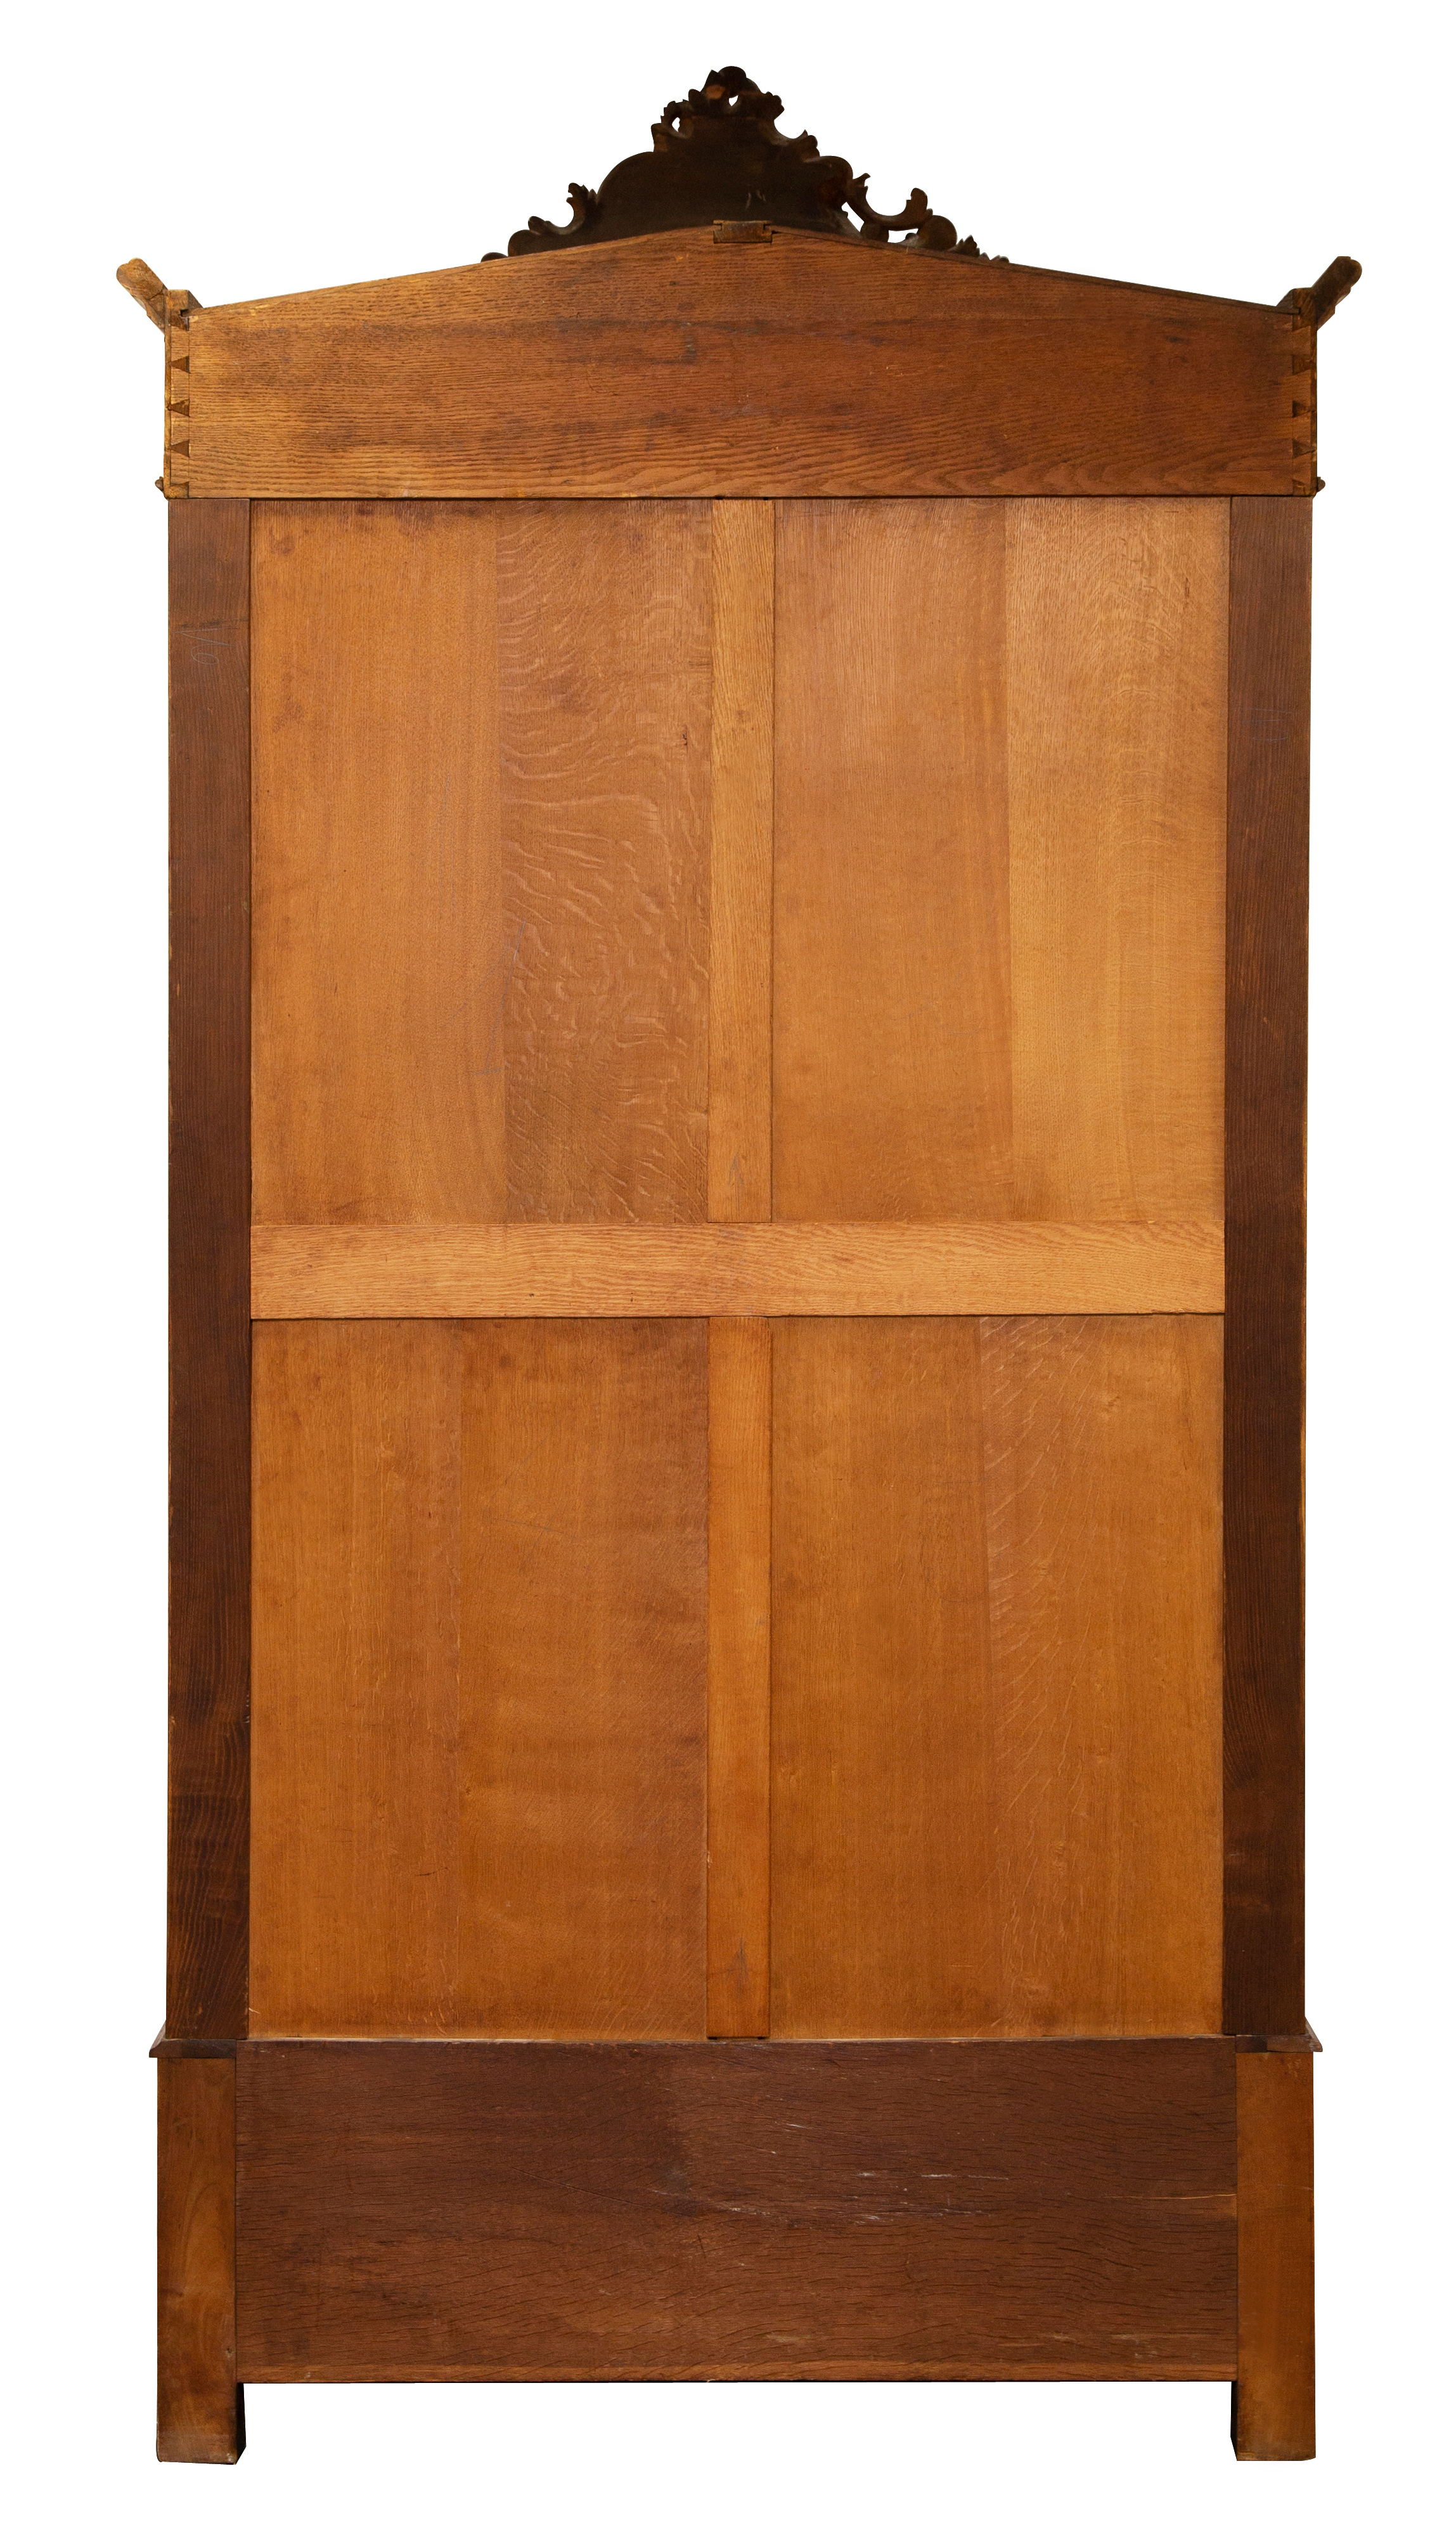 LATE 19TH CENTURY FRENCH REGENCE CARVED WALNUT OVERSIZED MIRRORED SINGLE DOOR ARMOIRE - Image 4 of 4